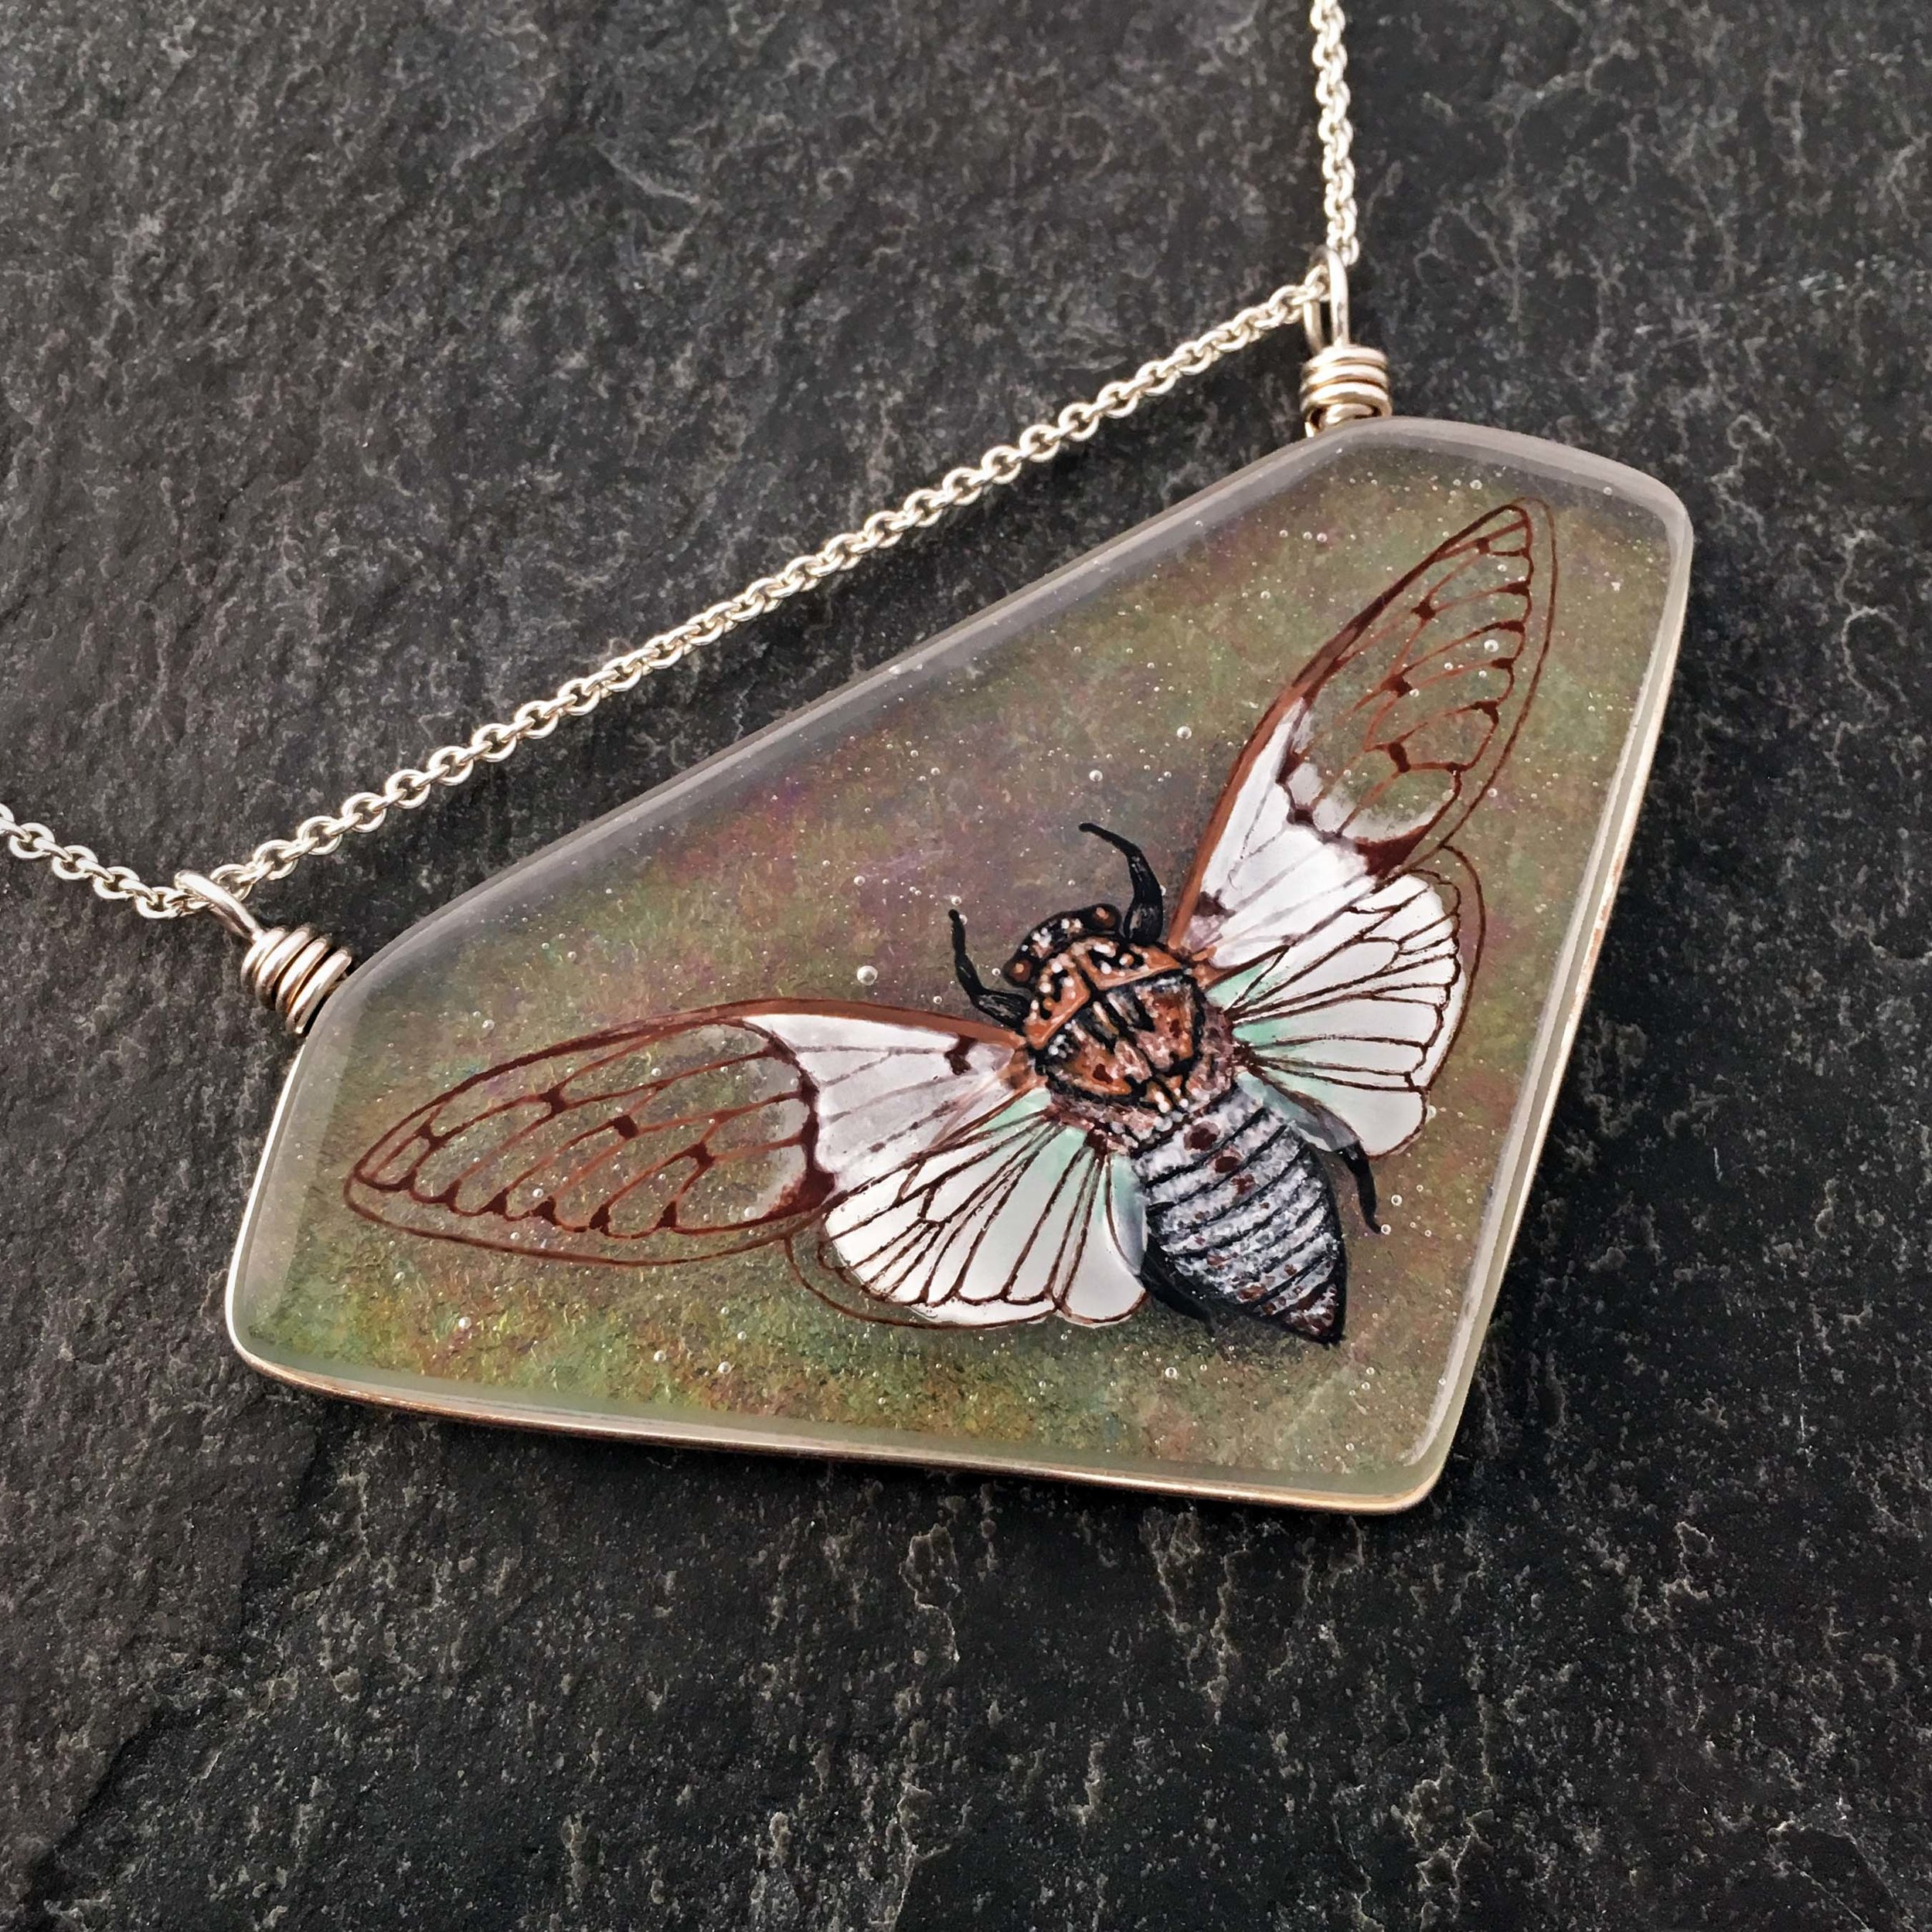 """1. White Ghost Cicada Necklace, kiln formed art glass, 2.75"""" x 2"""" x .25"""", Necklace, image painted with glass enamels, clear art glass with a rainbow iridescent coating, kiln formed, Argentium sterling silver wire setting and chain, $325.00."""